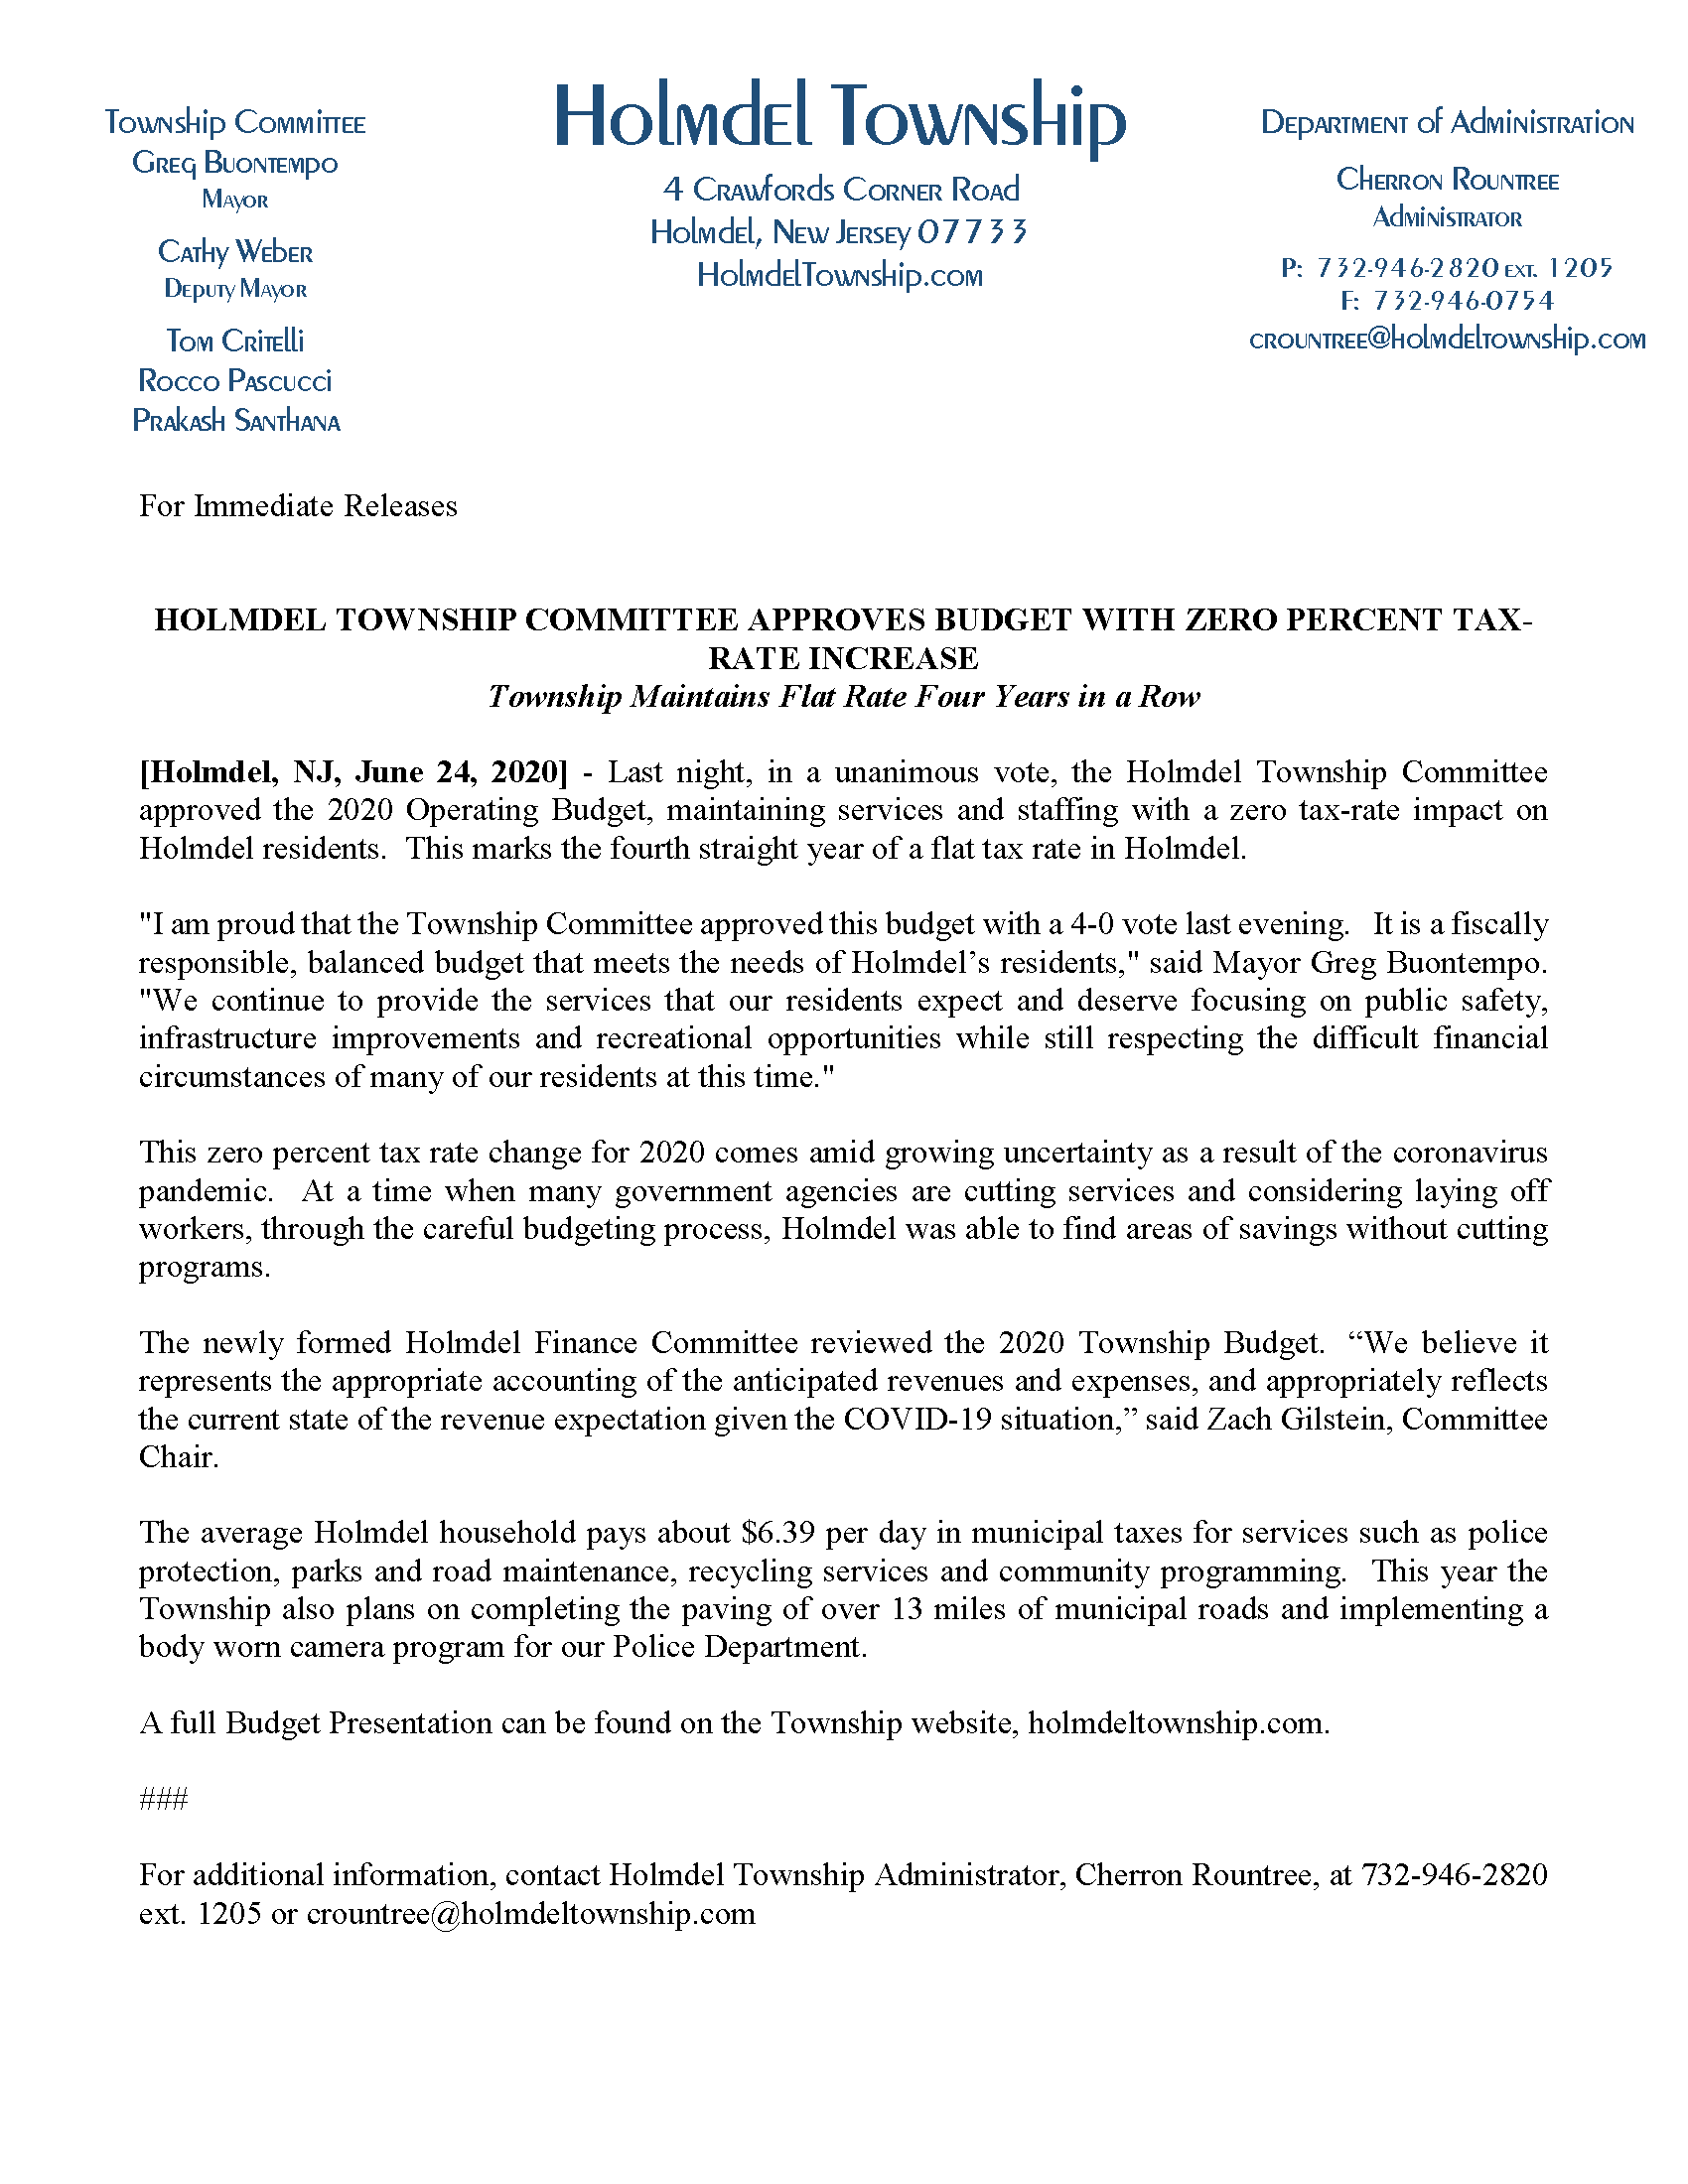 Holmdel Township Budget Press Release